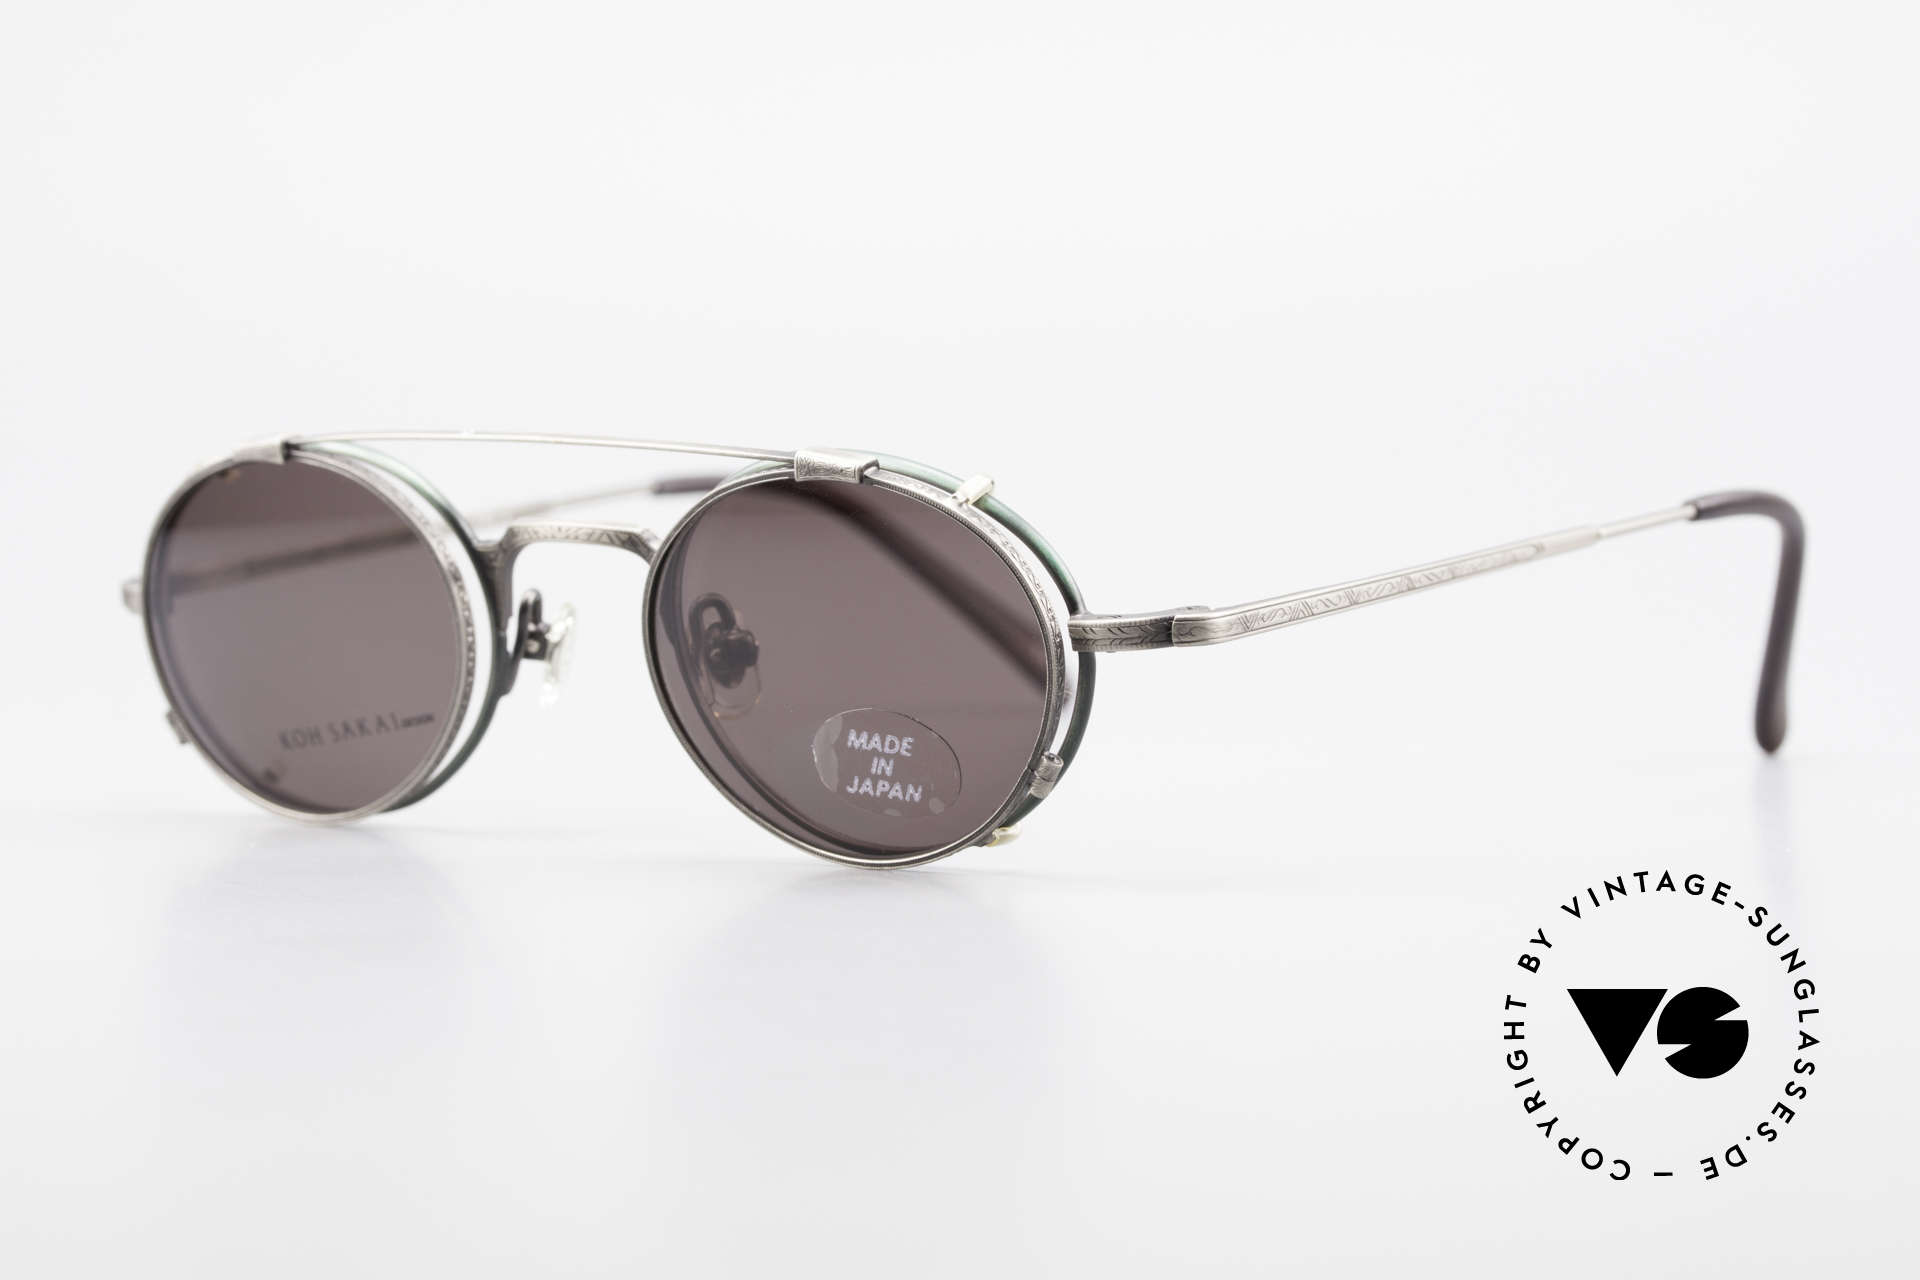 Koh Sakai KS9301 90s Oliver Peoples Eyevan Style, designed in Los Angeles and produced in Sabae (Japan), Made for Men